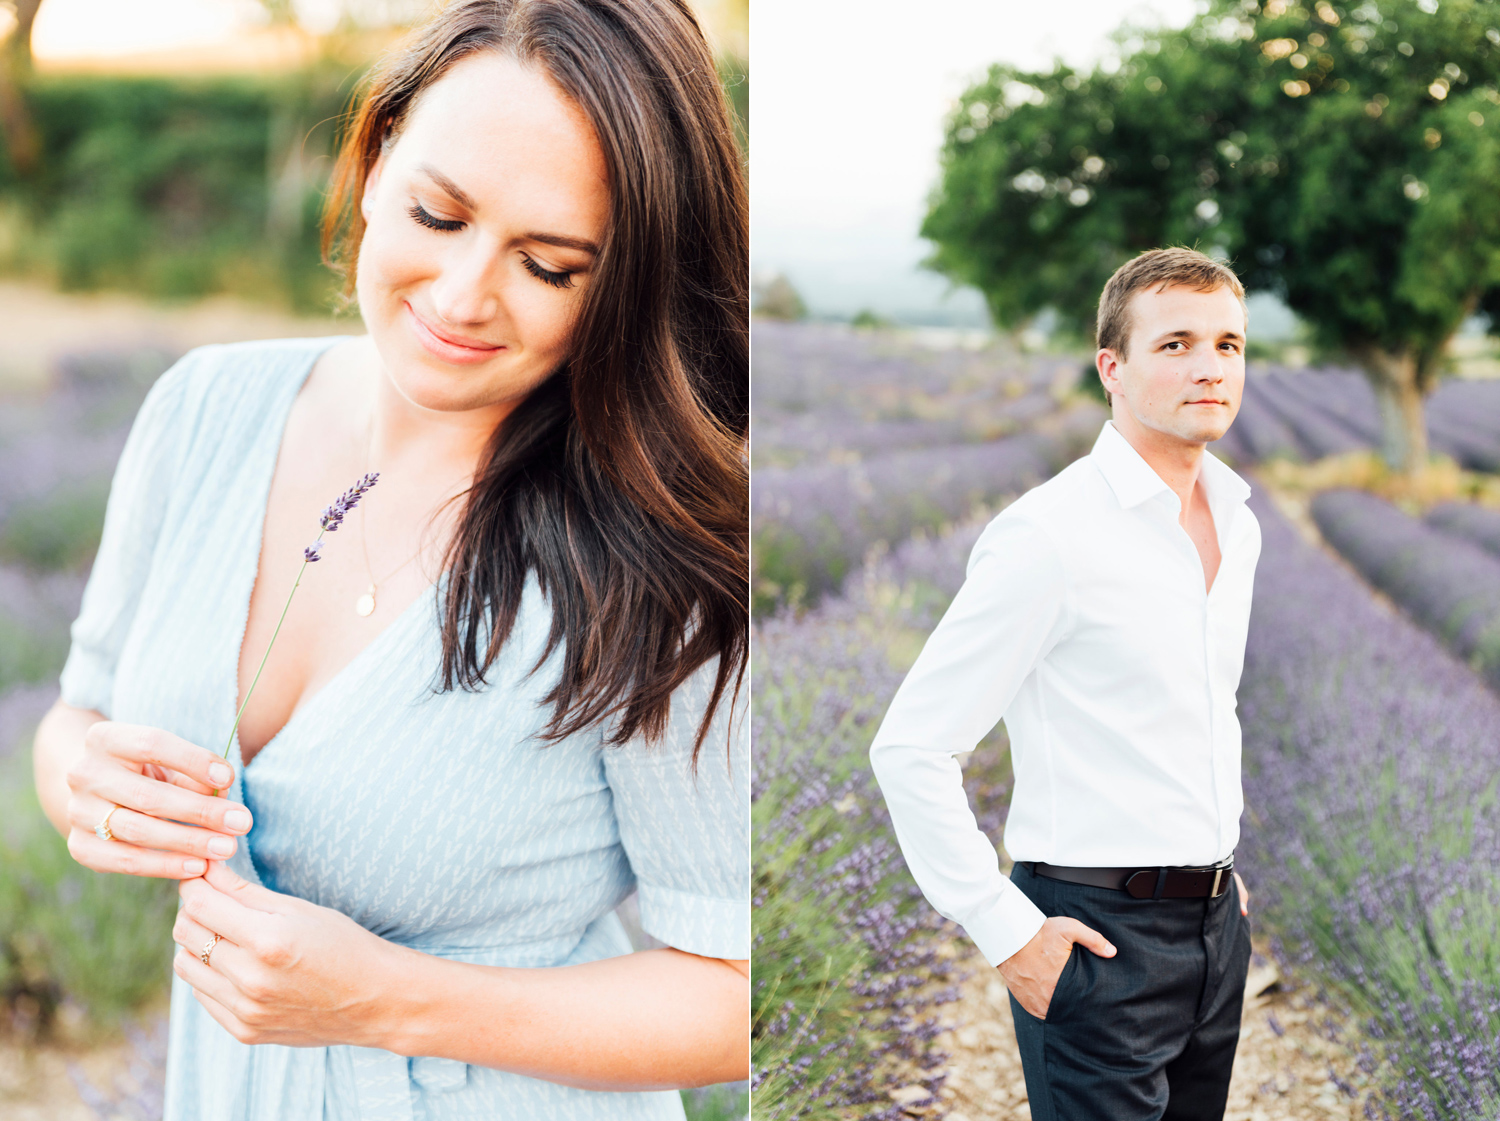 002-katie-mitchell-provence-wedding-portrait-engagement-photographer-south-of-france.jpg